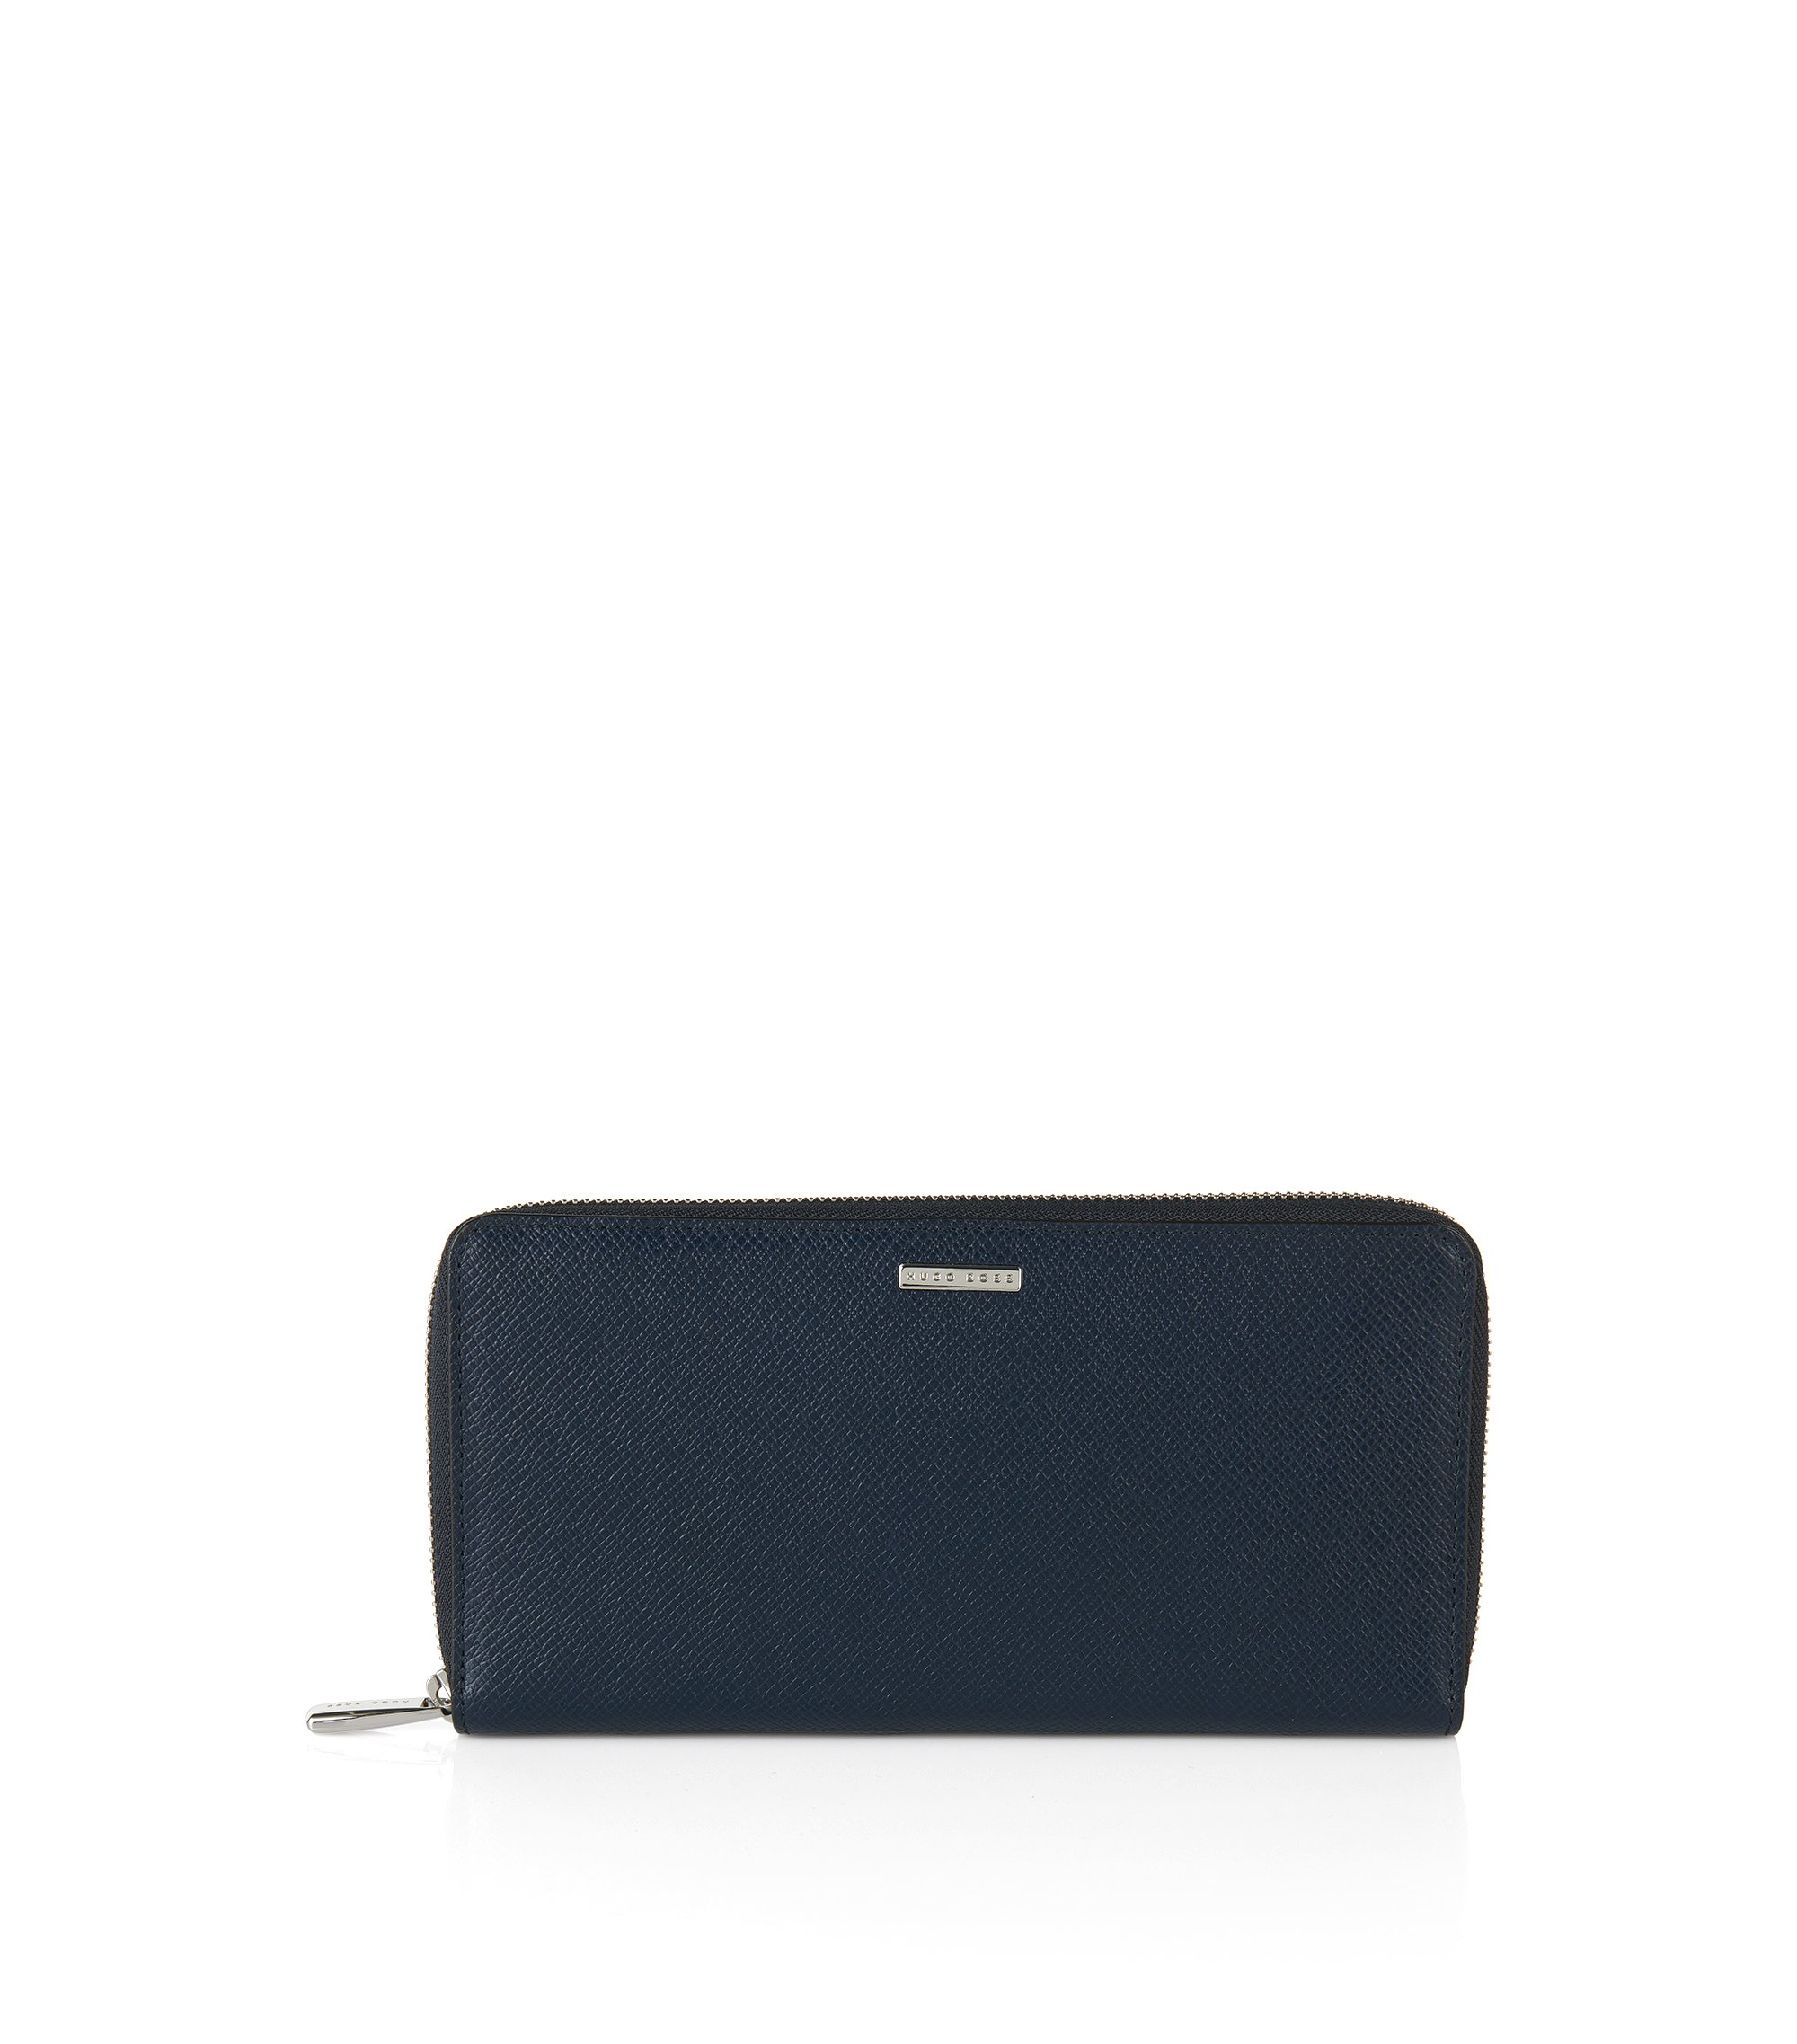 BOSS Signature Collection ziparound wallet in palmellato leather, Dark Blue